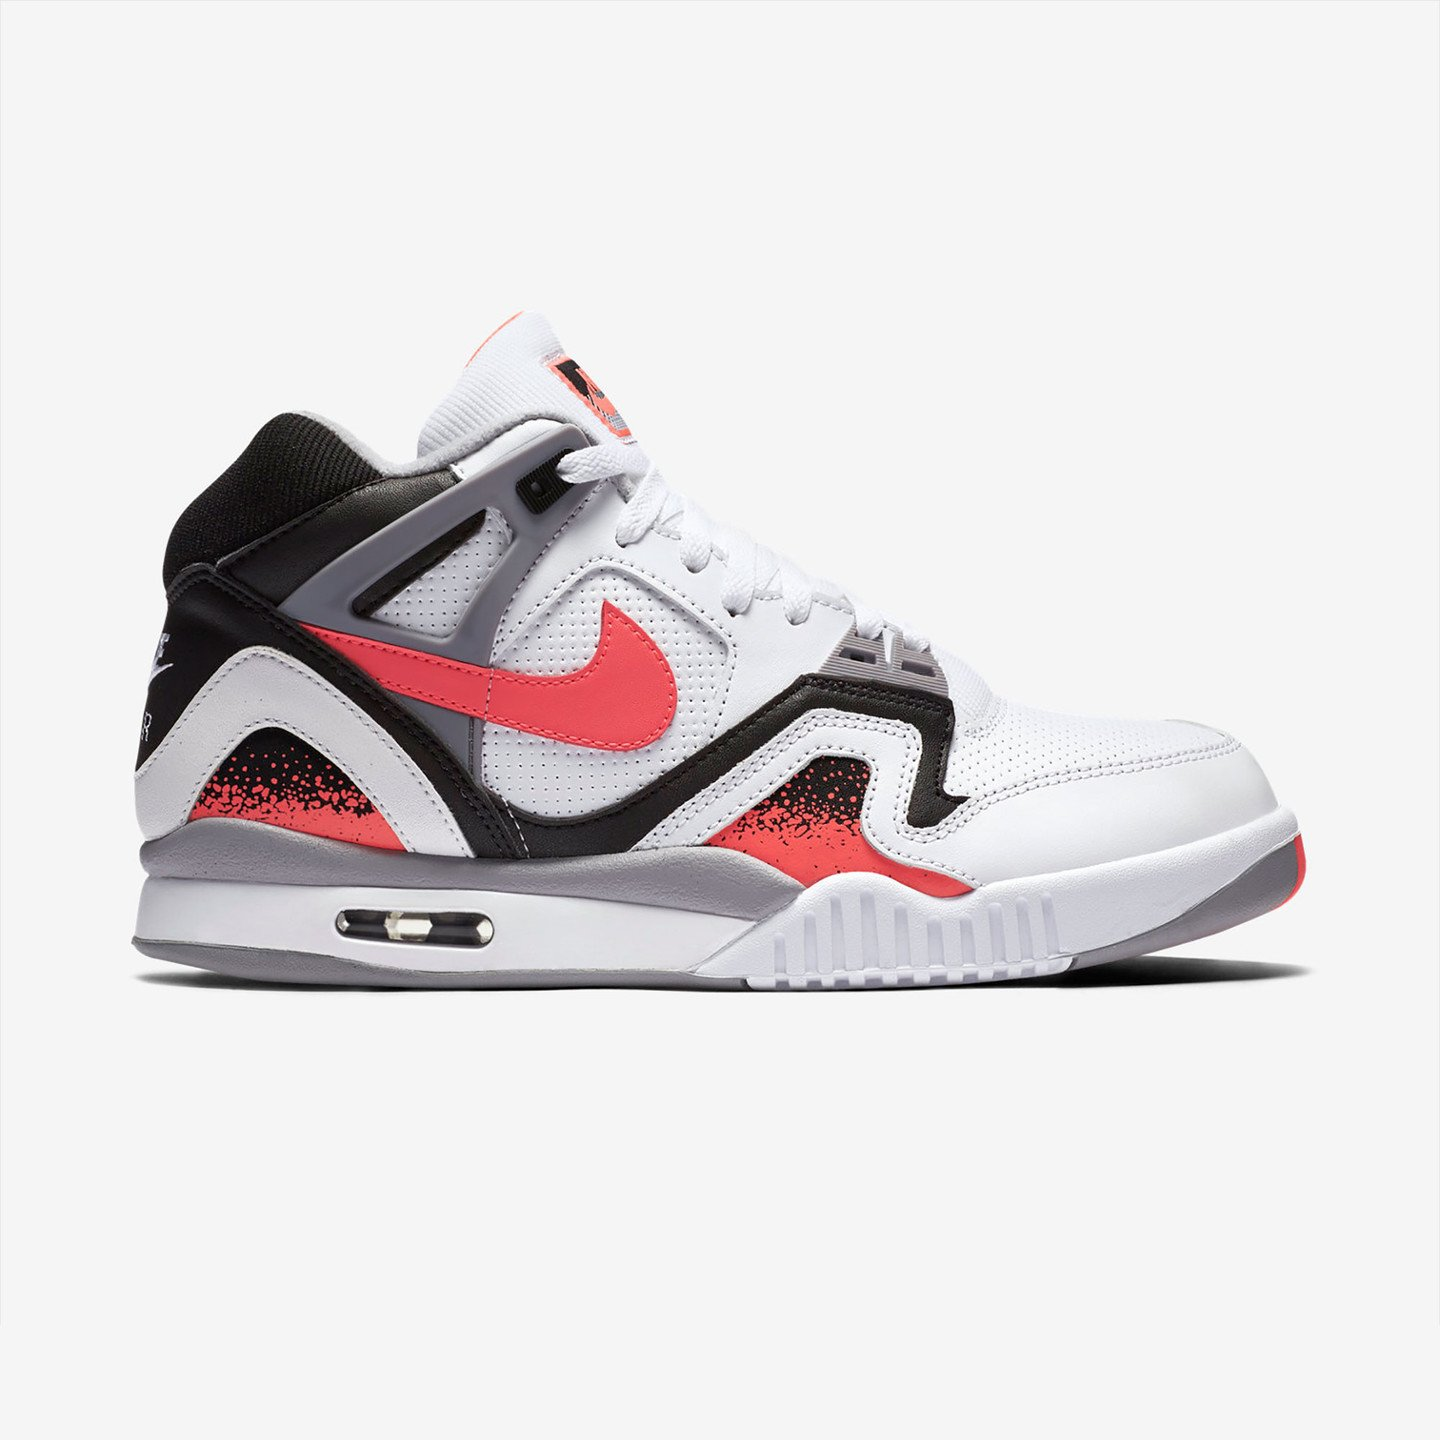 Nike Air Tech Challenge II White / Hot Lava 318408-104-45